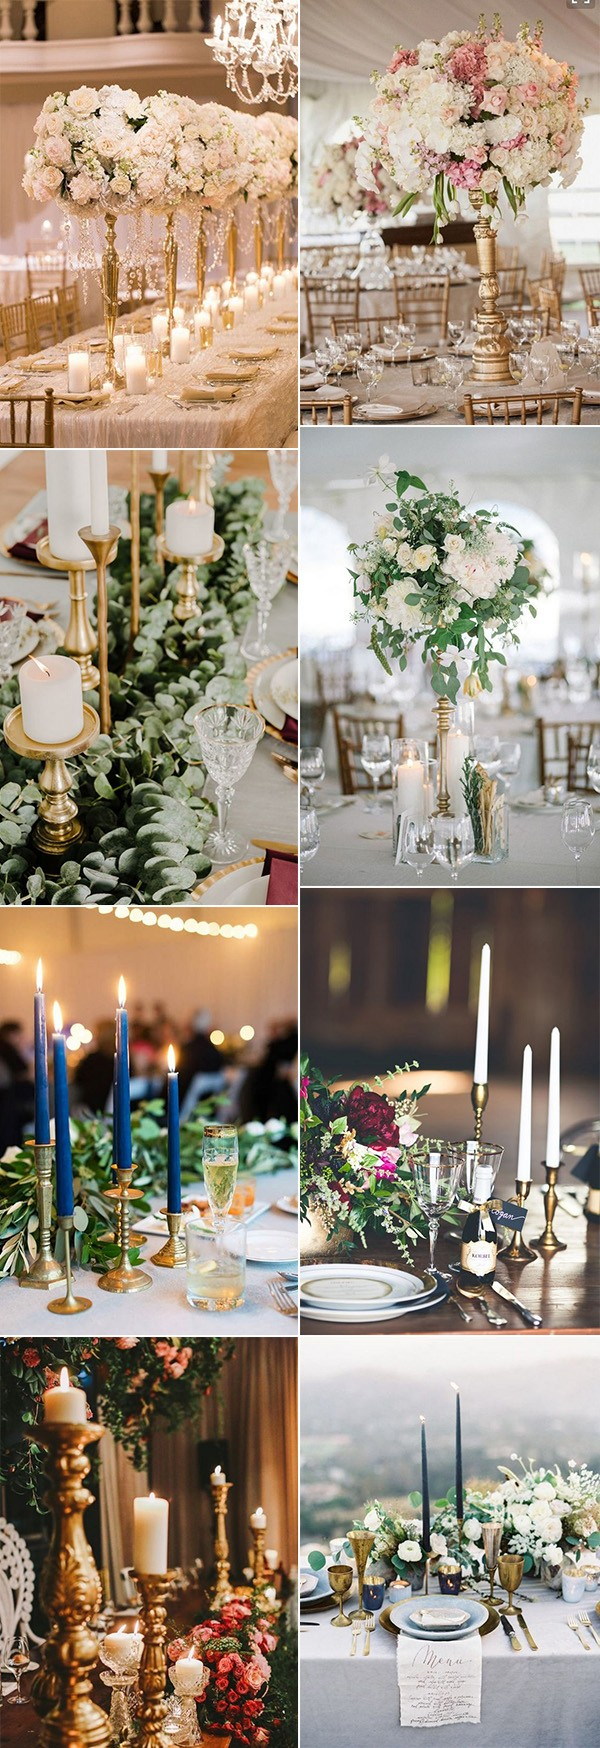 vintage wedding centerpieces with candlesticks